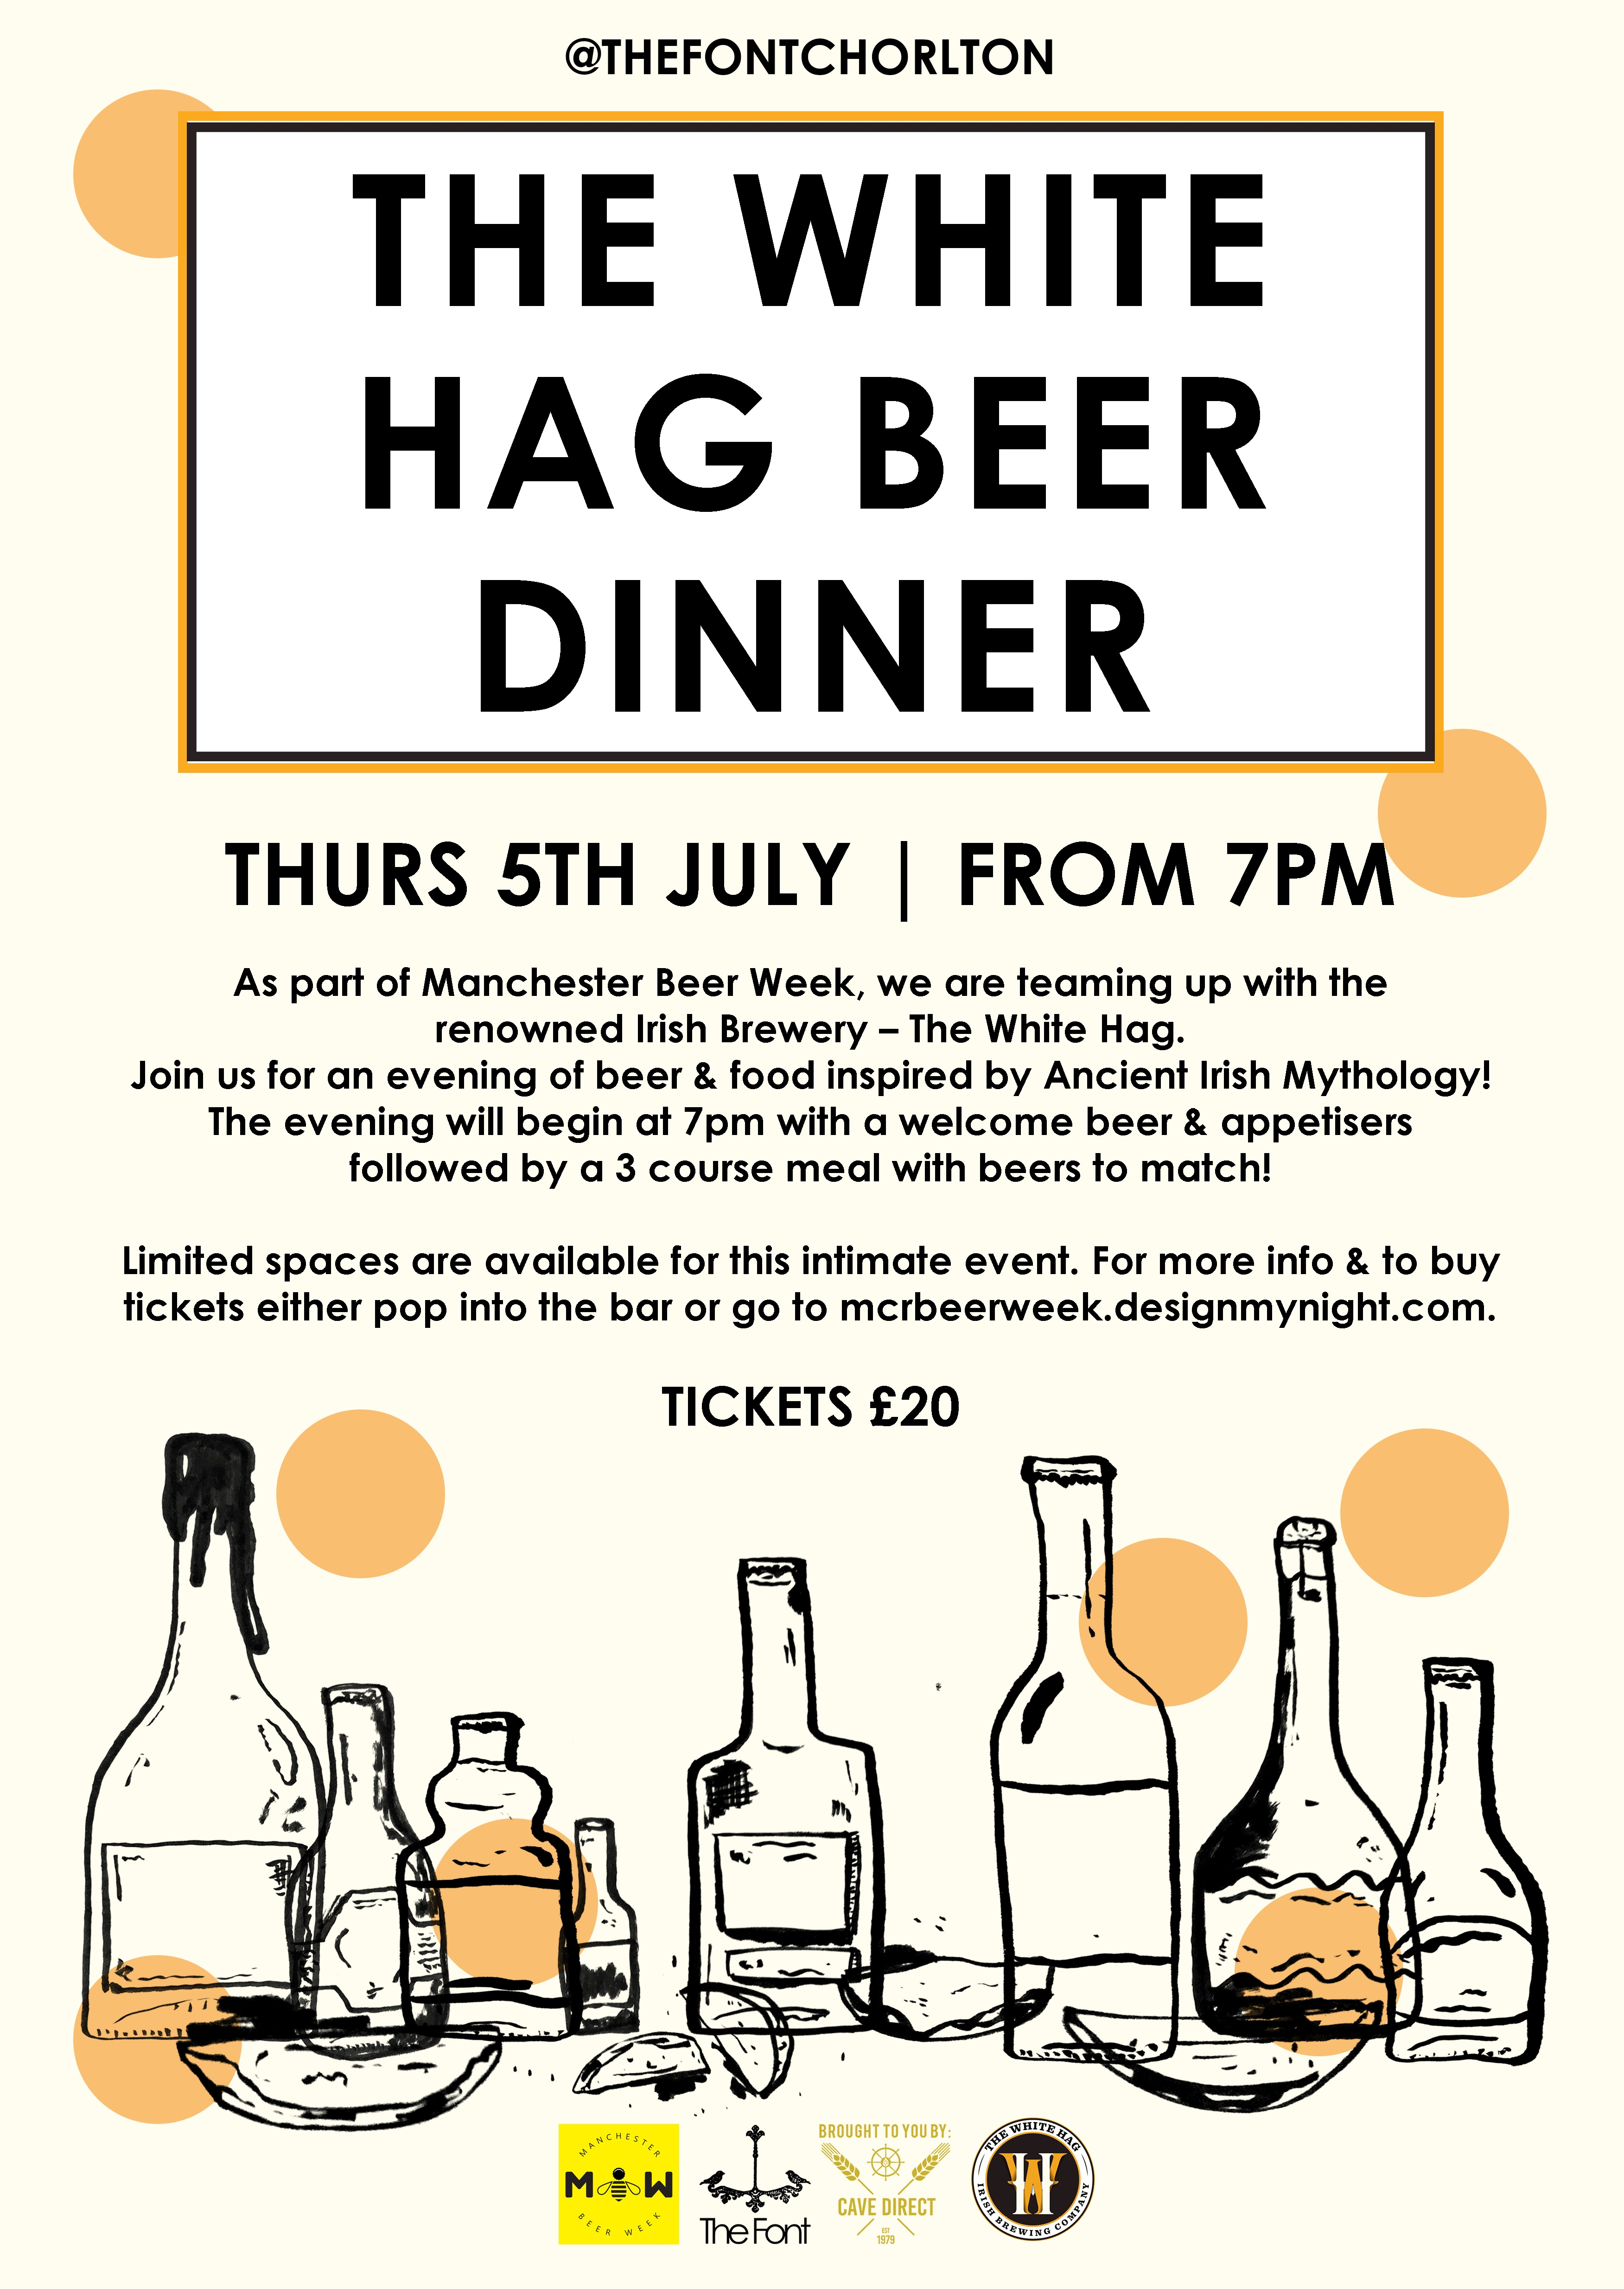 The White Hag Beer Dinner